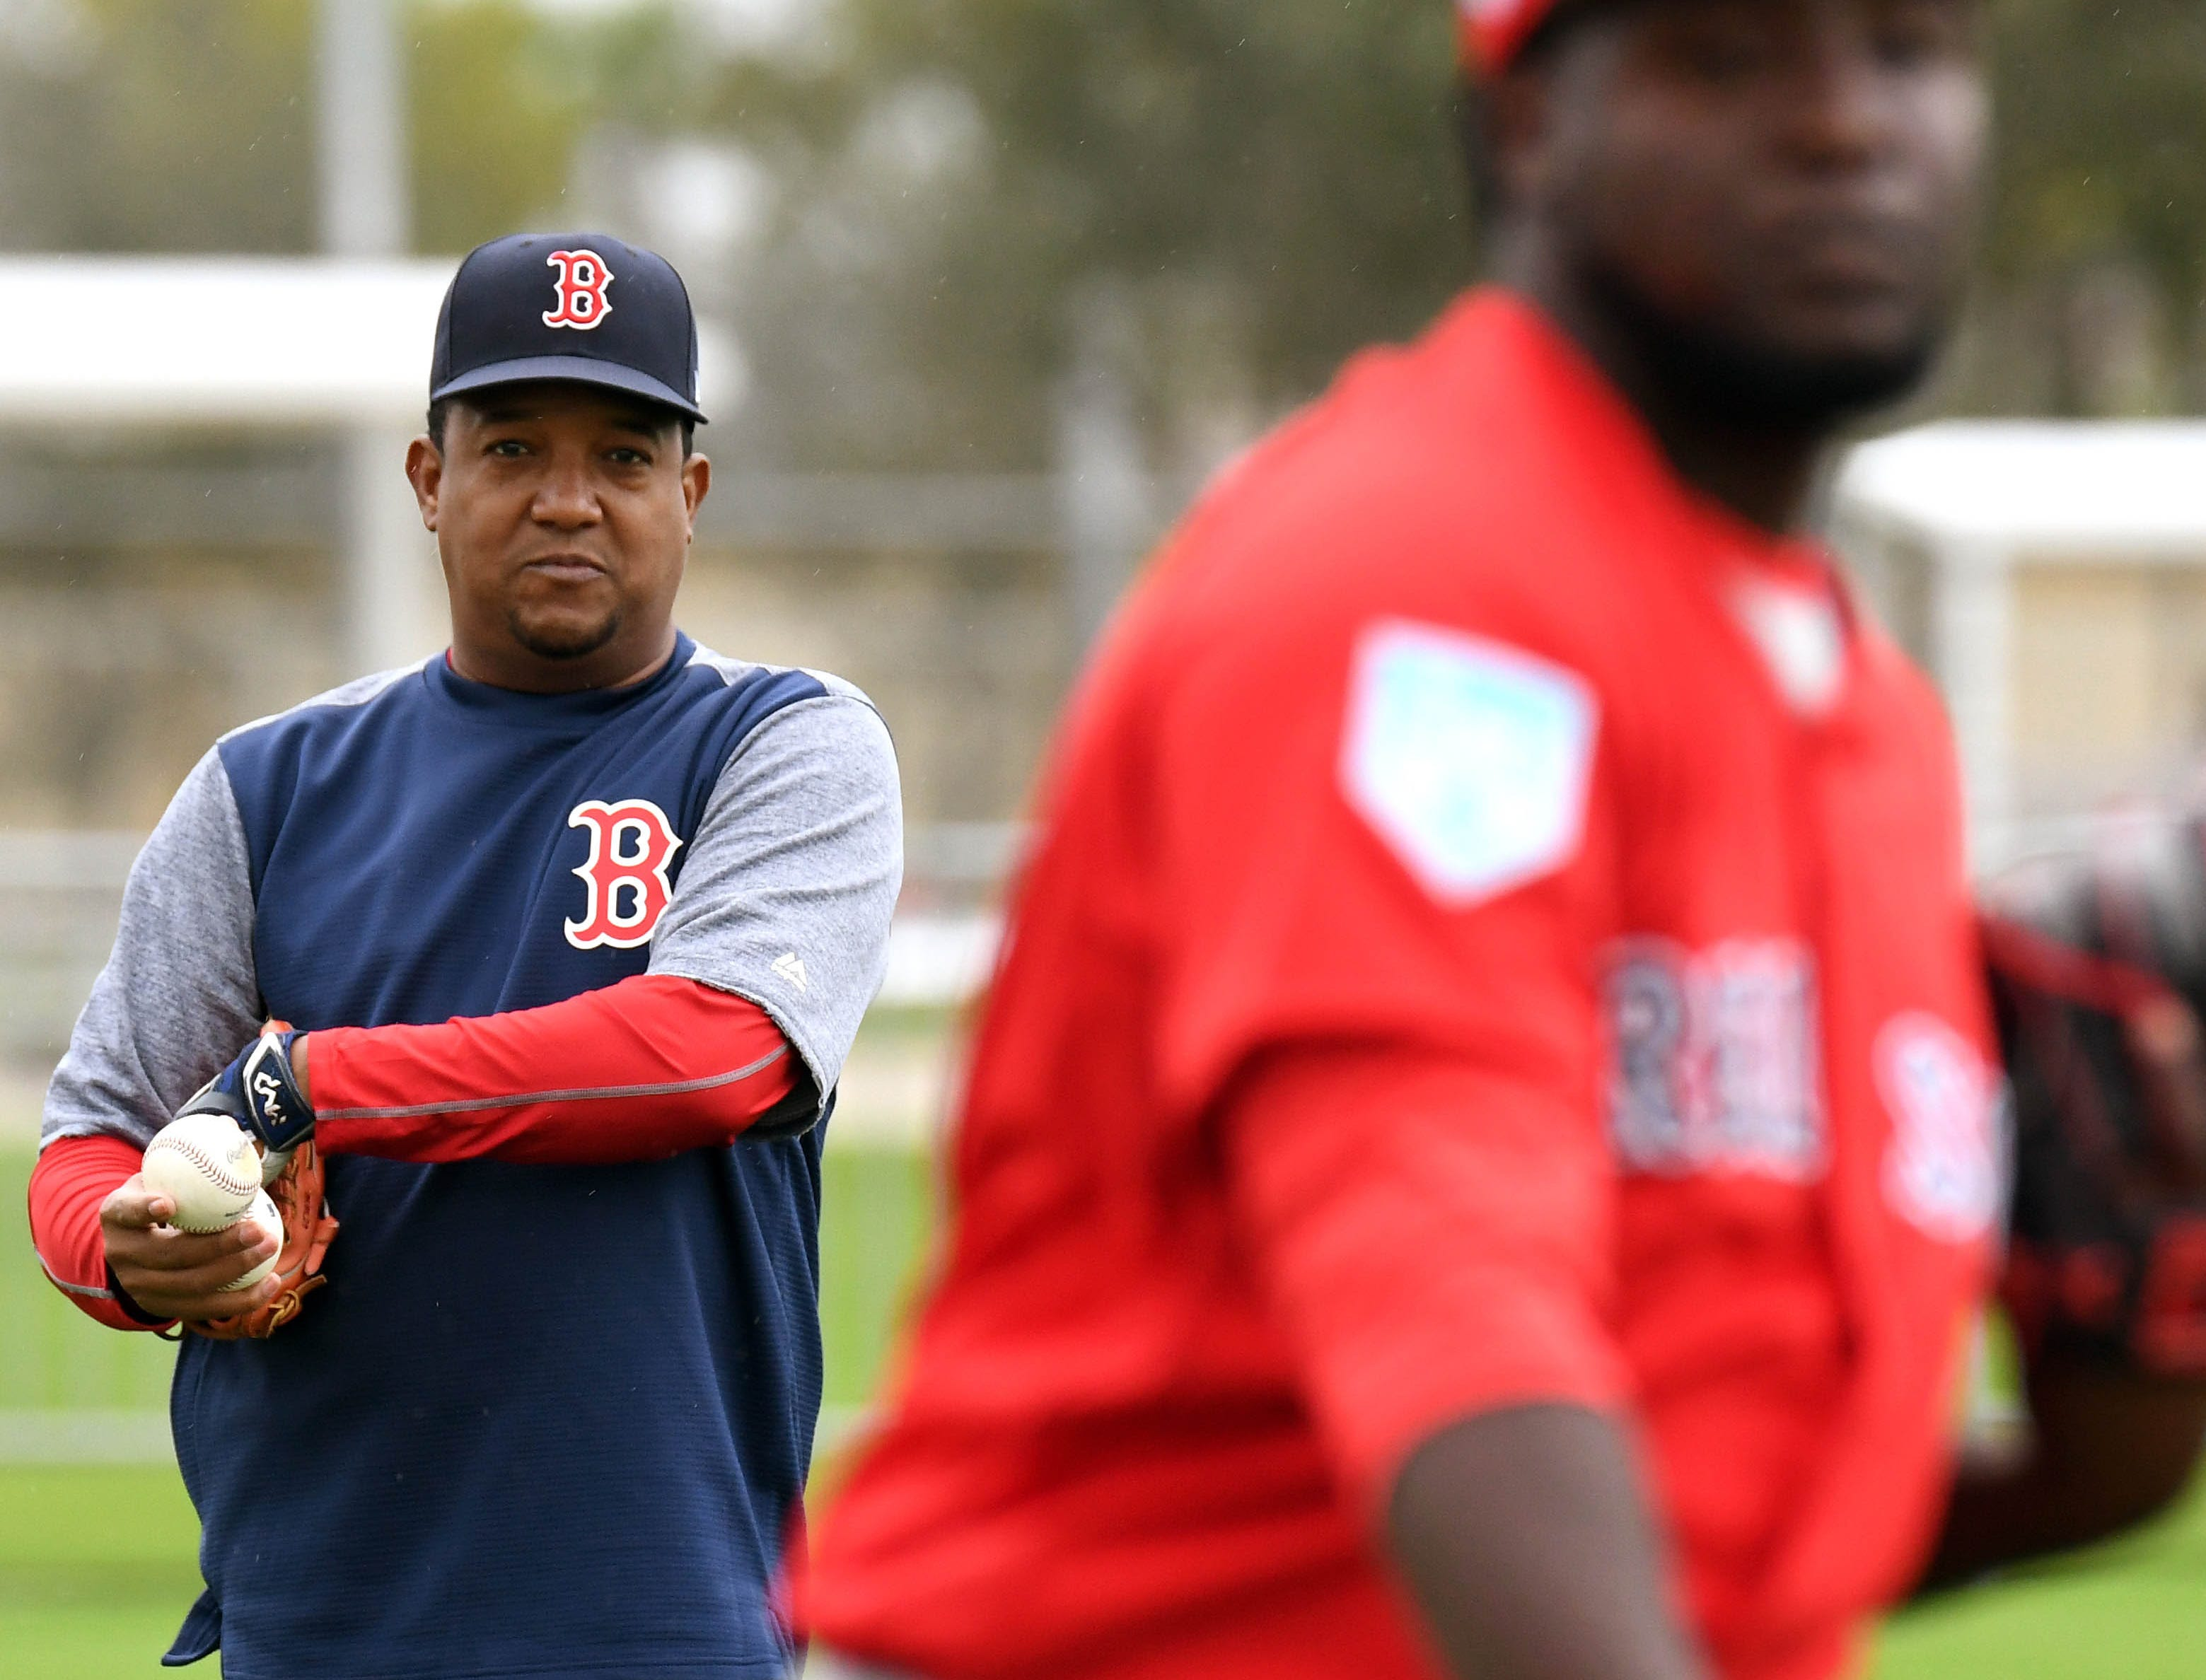 Feb. 13: Red Sox special instructor Pedro Martinez watches a group of pitchers warm up.